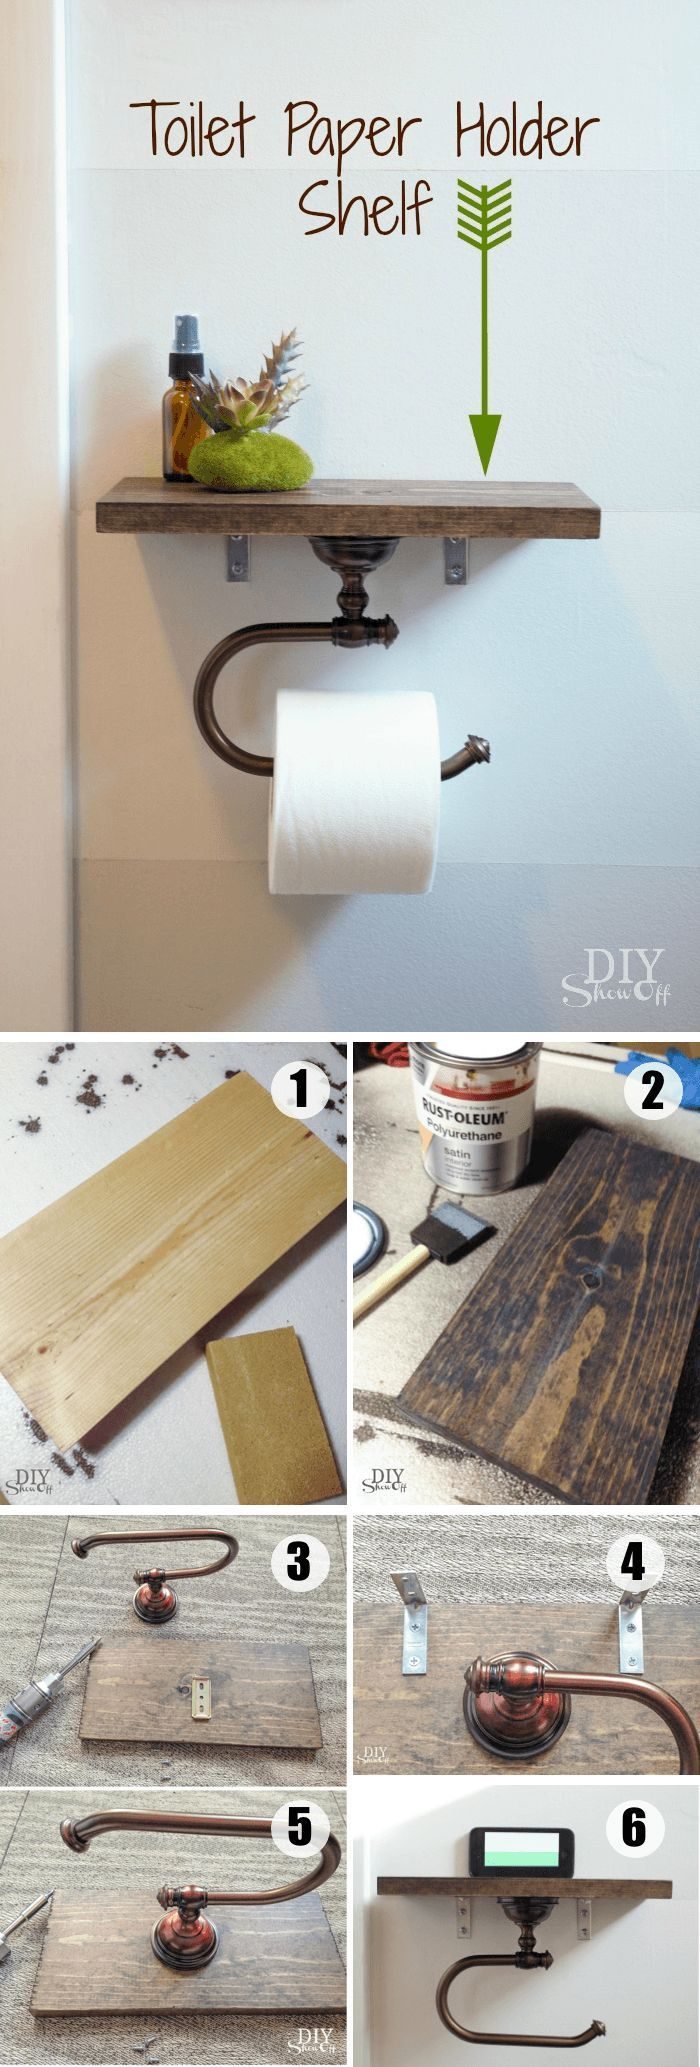 15 Totally Unusual Diy Toilet Paper Holders Homelovr Diy